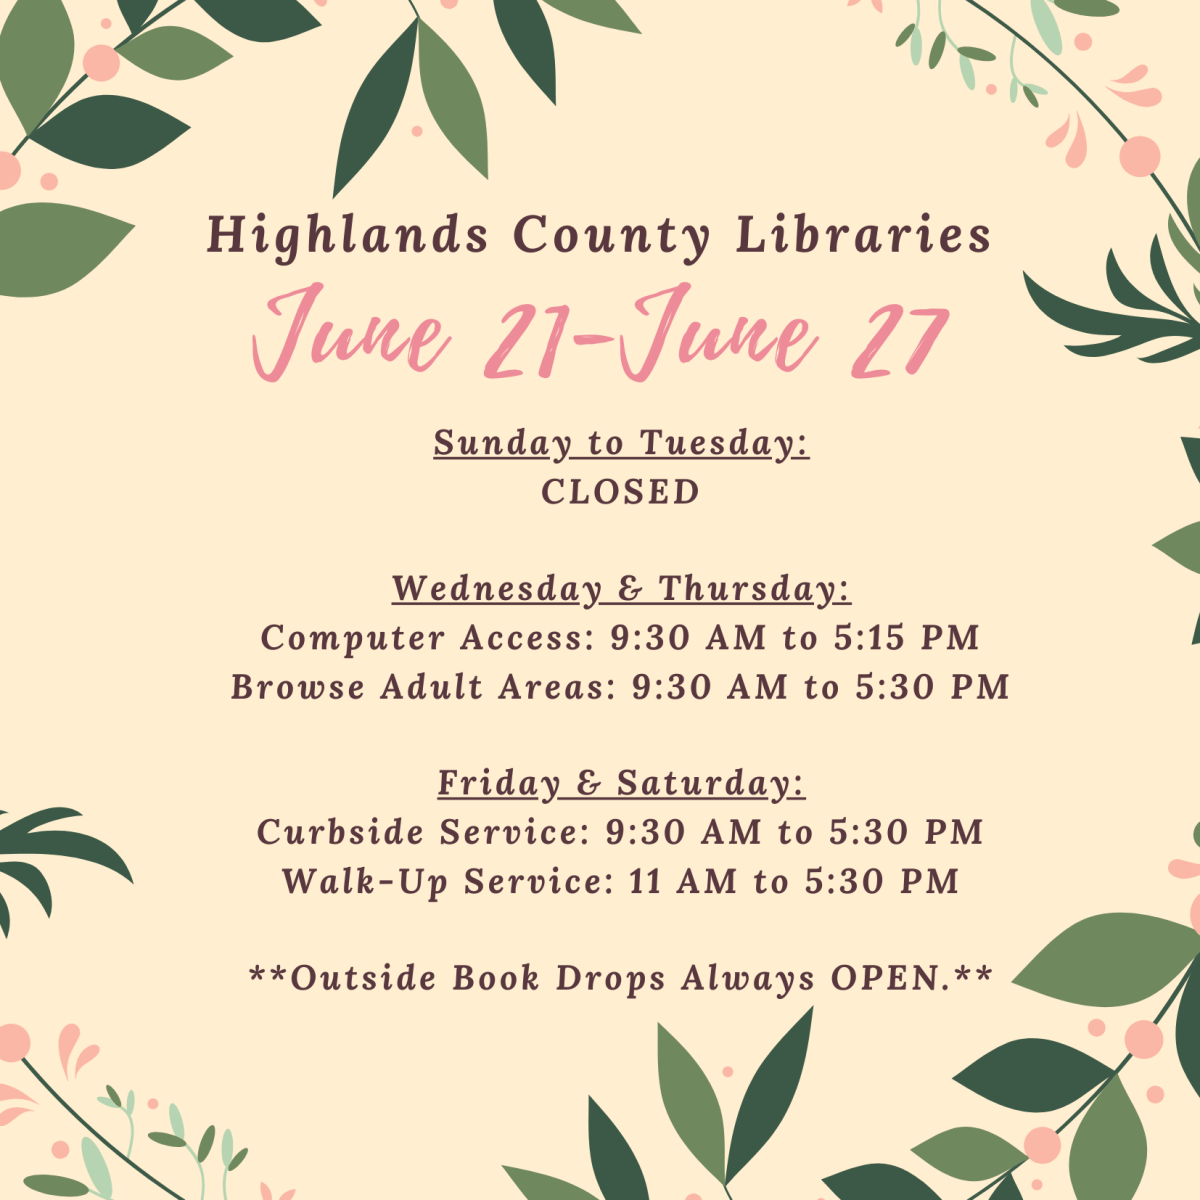 Highlands County Public Libraries Schedule for June 21 to June 27, 2020: Wednesday & Thursday: Computer access & adult areas open for browsing. Friday & Saturday: Curbside and Walk-Up Services available.